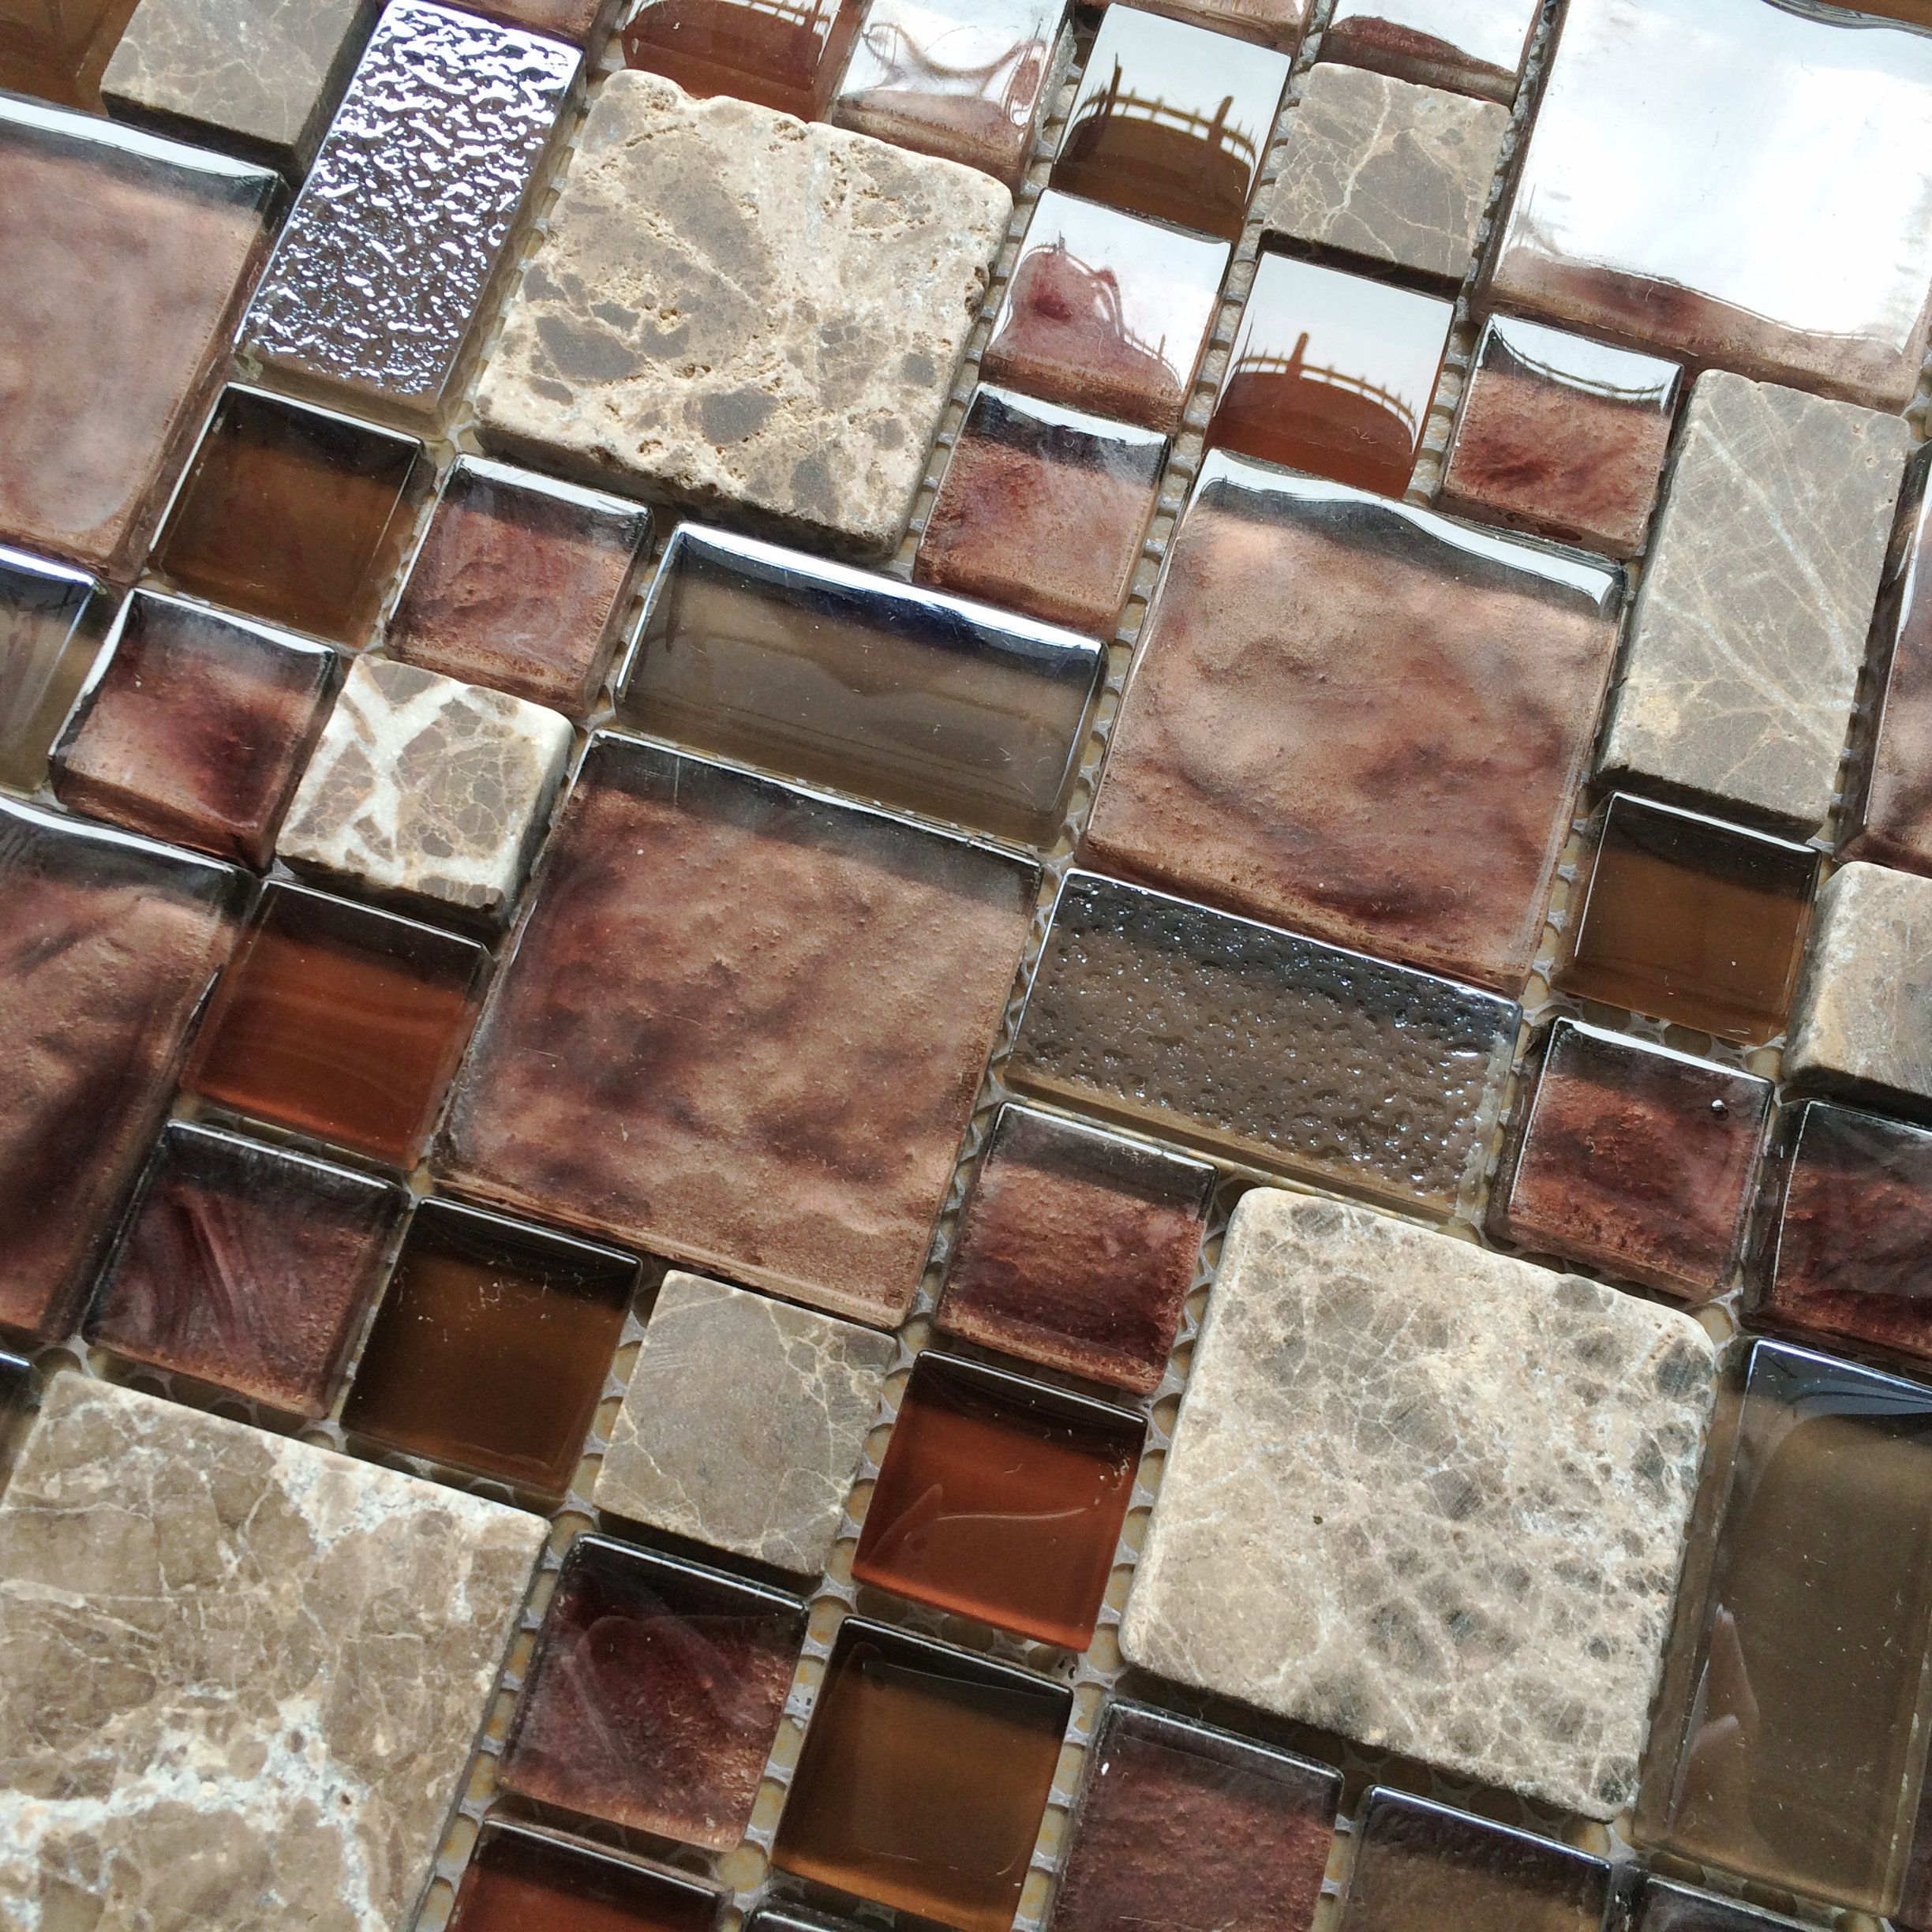 Glass Tiles In Bathroom: Burgundy Red Glass Mosaic Wall Tile Stone Mosaic Kitchen